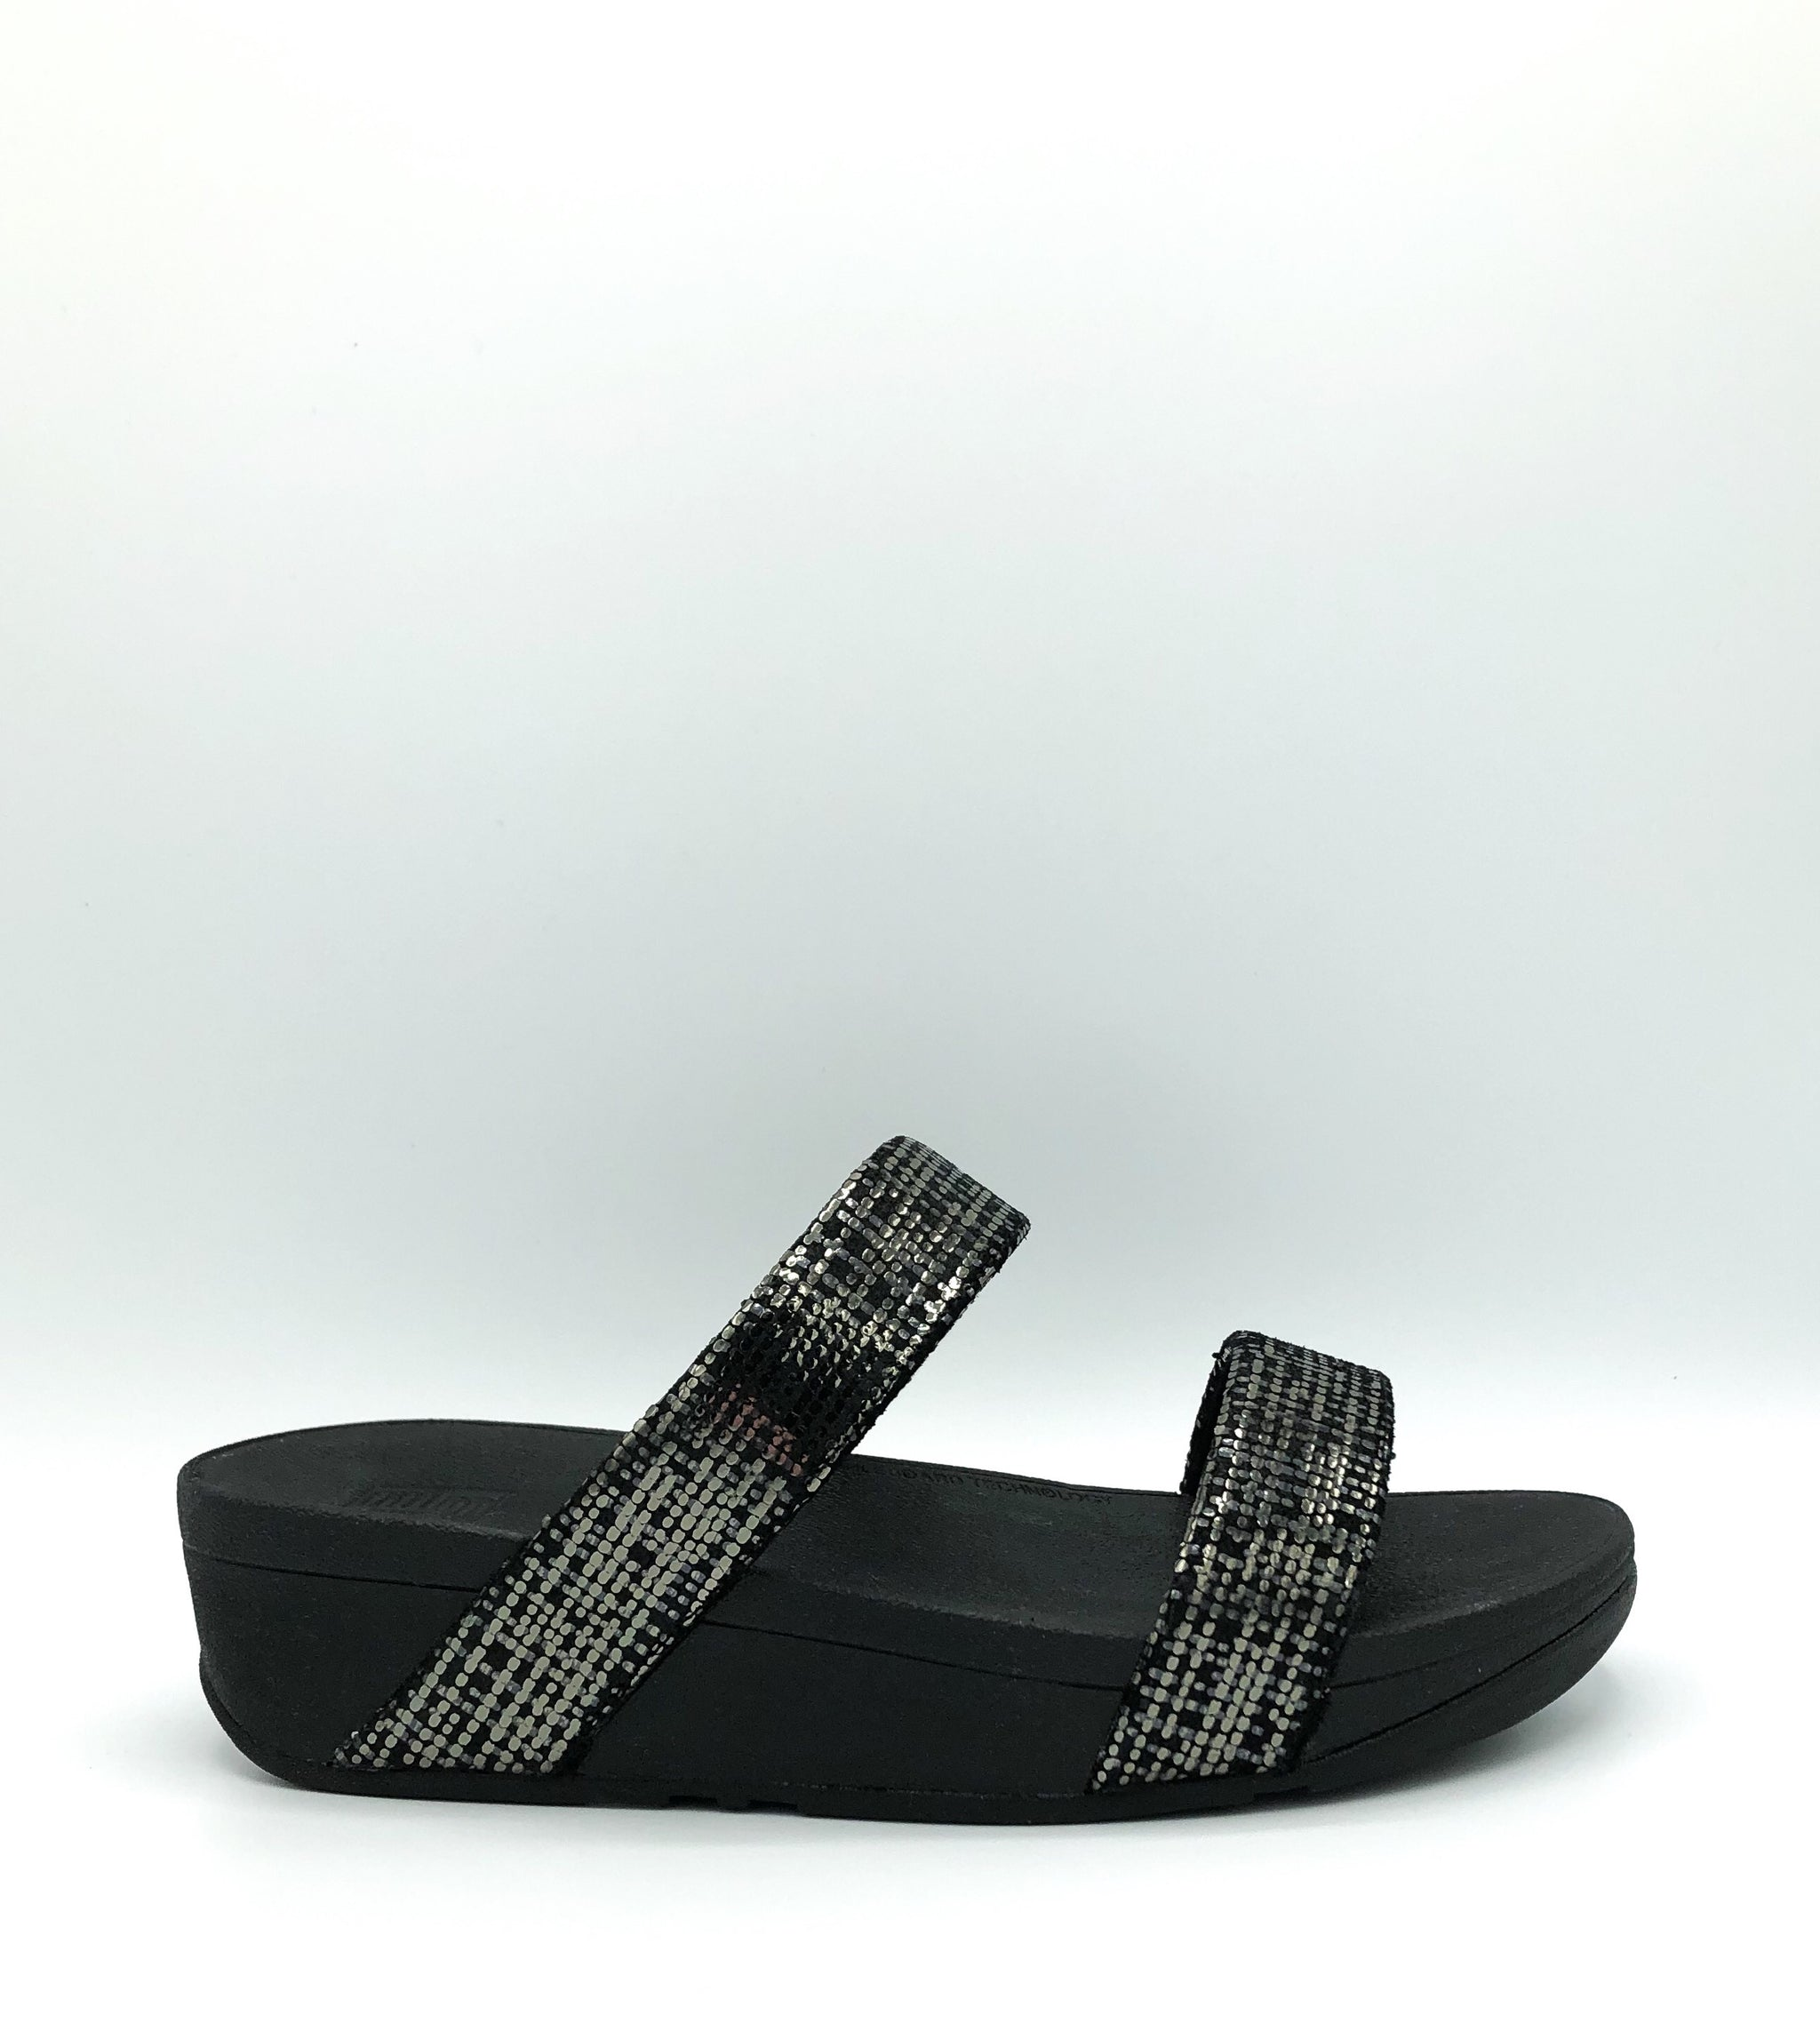 FIT FLOP - LOTTIE CHAIN PRINT SLIDE IN BLACK